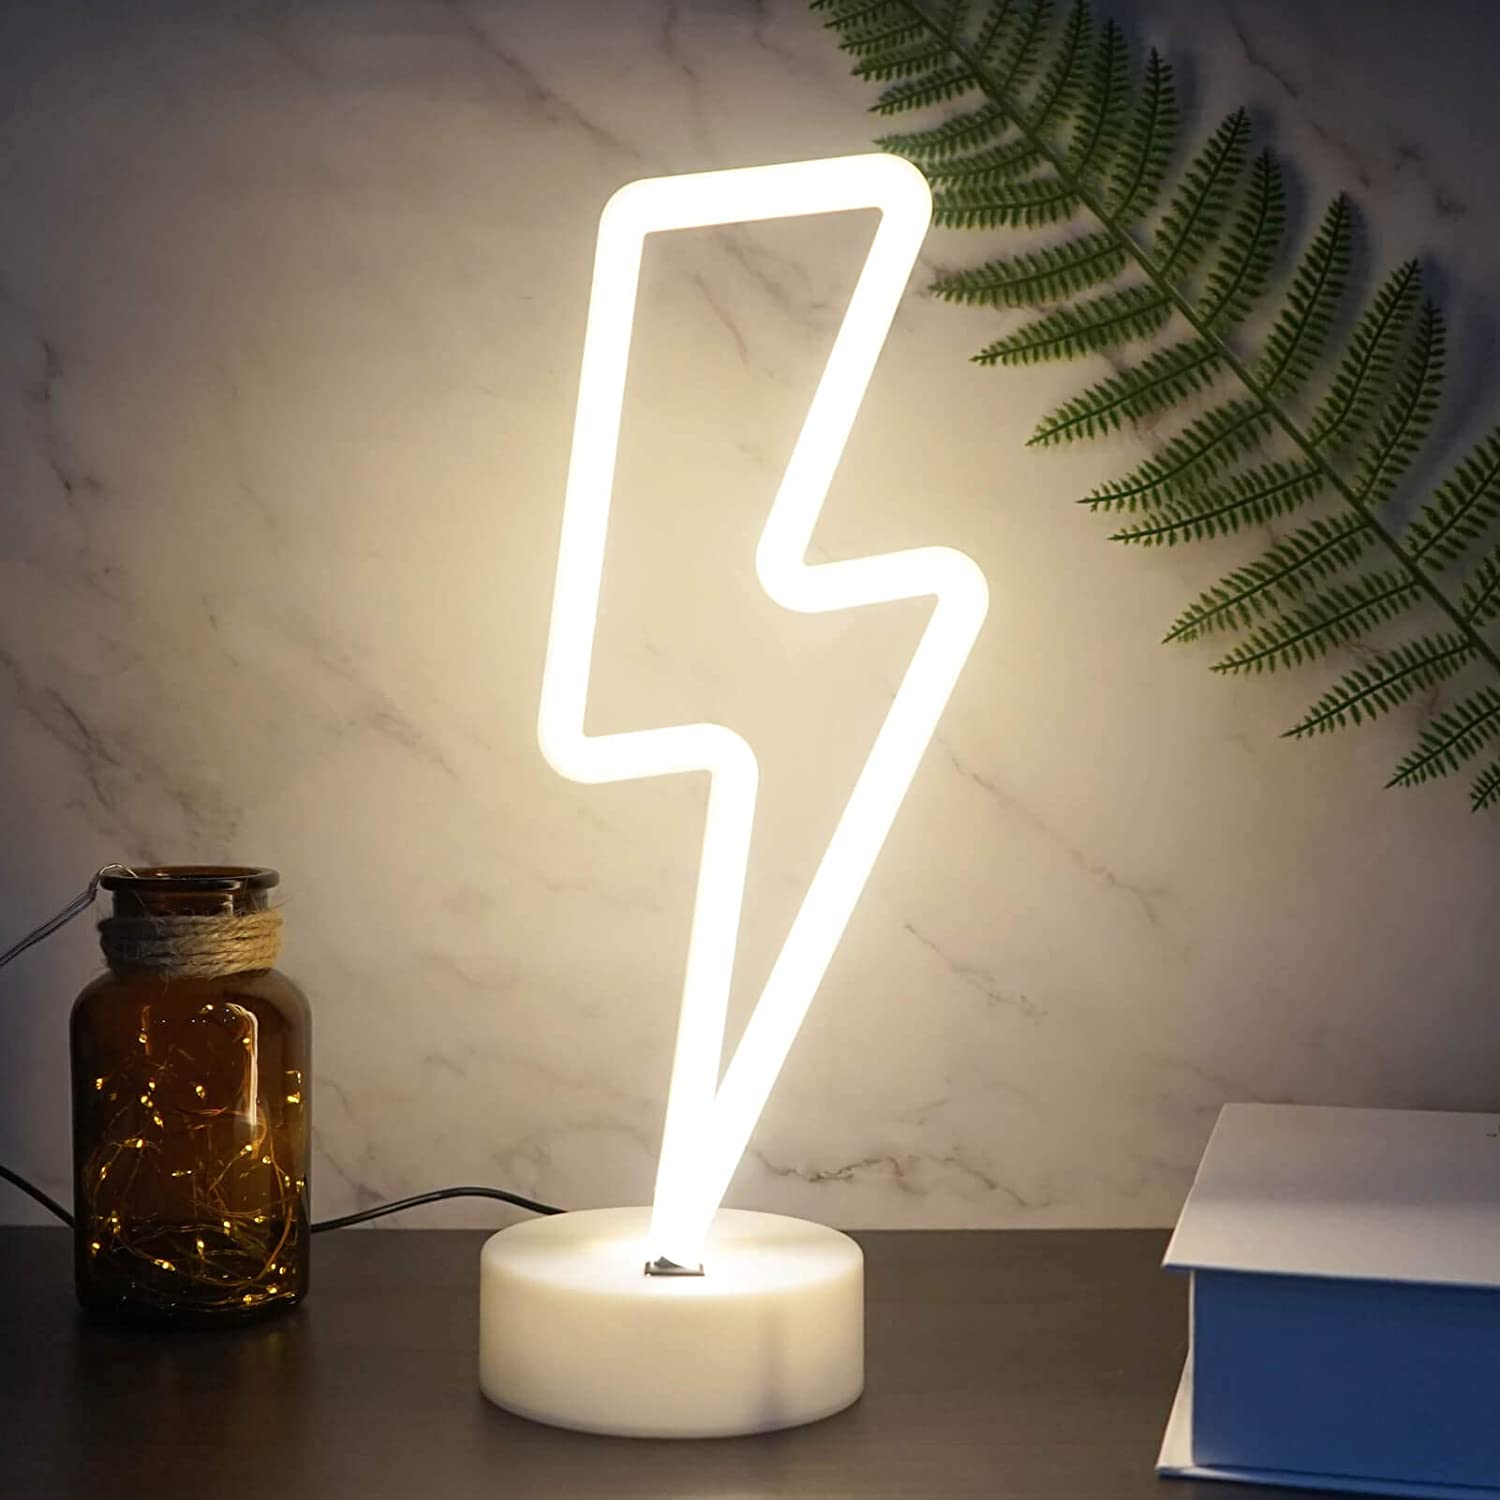 YIVIYAR LED Neon Light Sign, Lightning Bolt Neon Sign with Holder, USB/Battery Operated Neon Signs for Wall Decor LED Signs for Bedroom Decorations Game Room Decor for Men (Warm White Lightning)